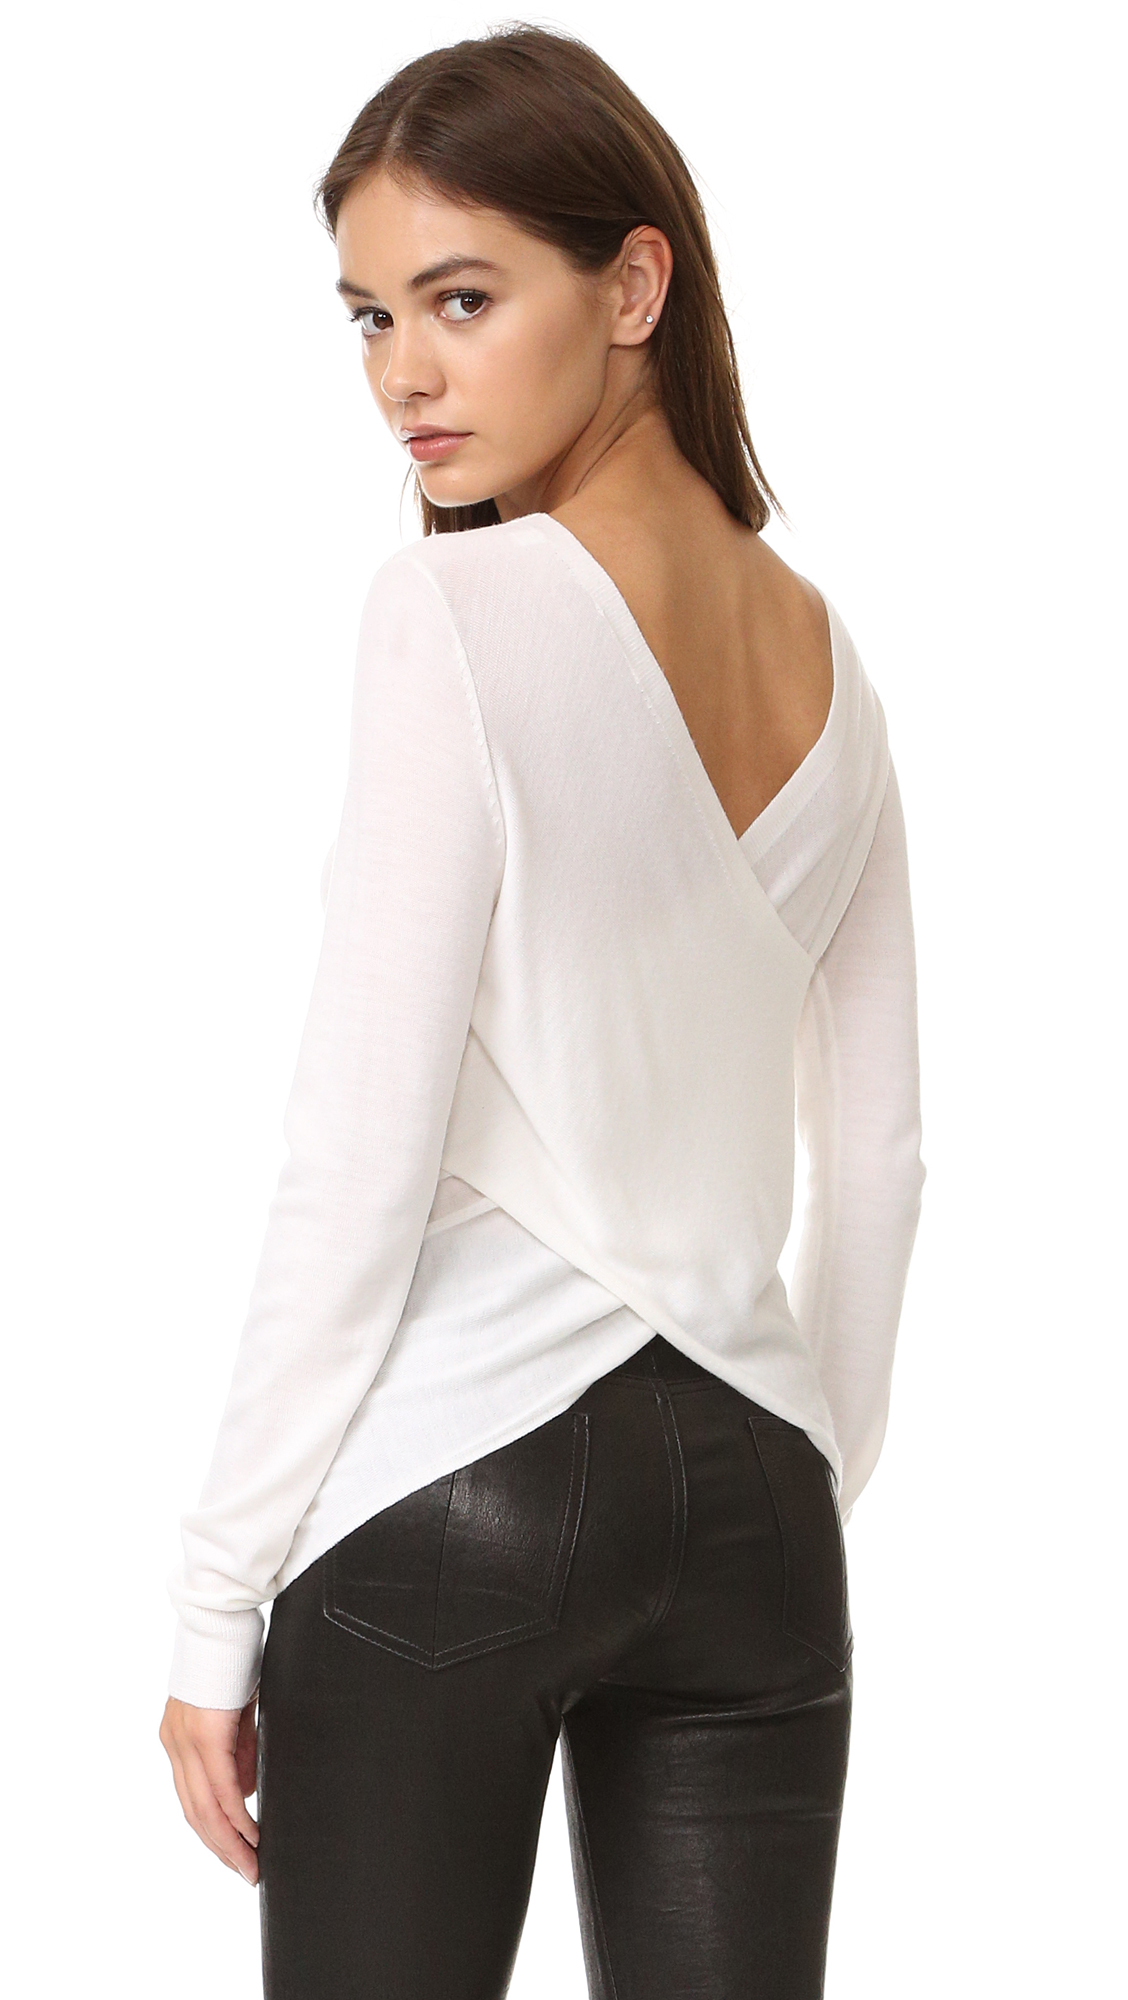 A.L.C. Wilson Sweater - White at Shopbop